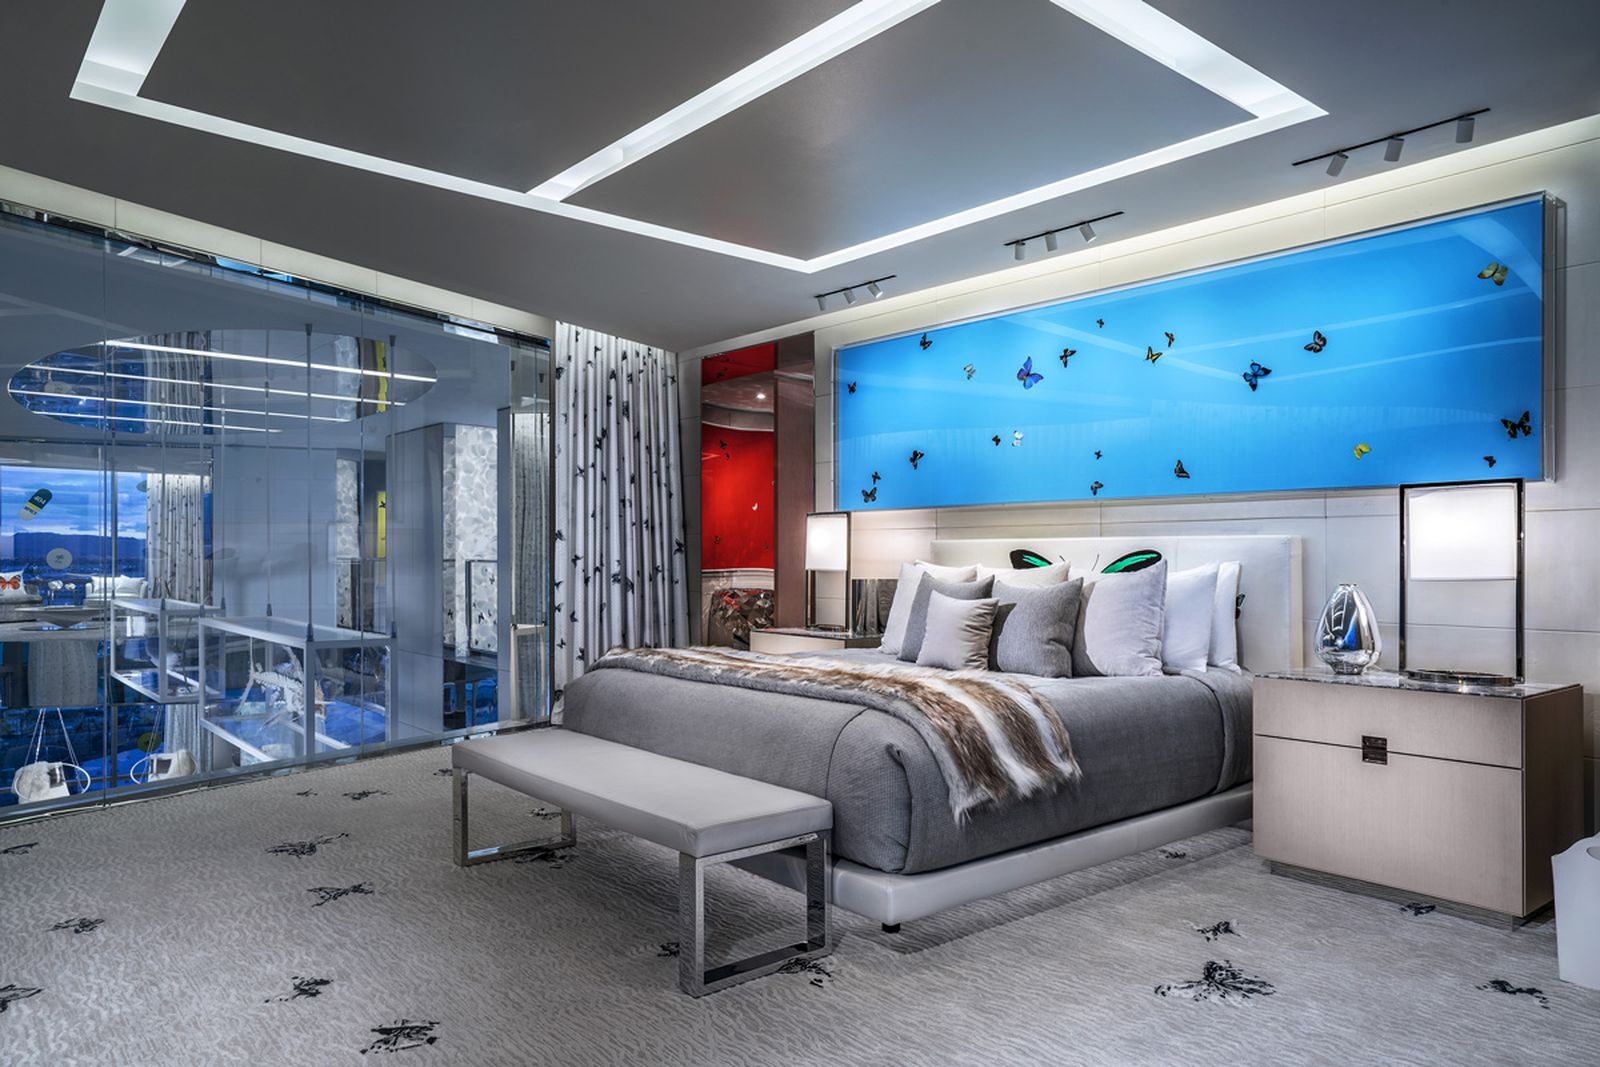 damien hirst suite hotels plaza hotel the palms